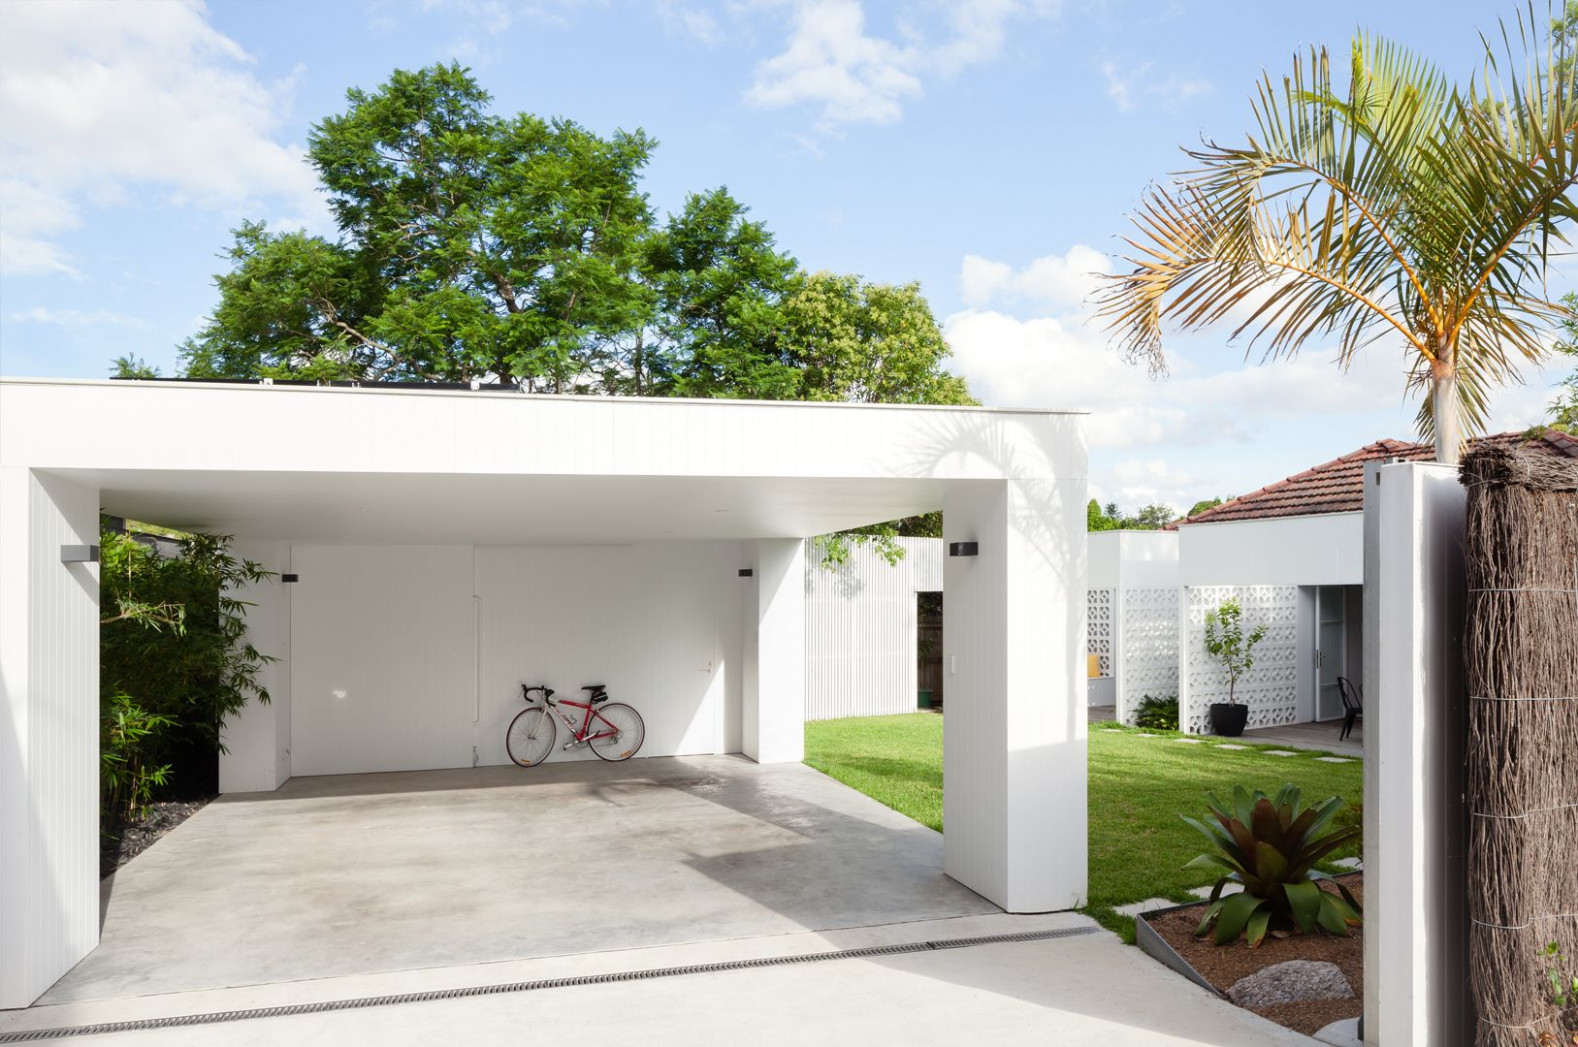 House. Breeze Block Simple Flat Roofed Carport | Covered ..